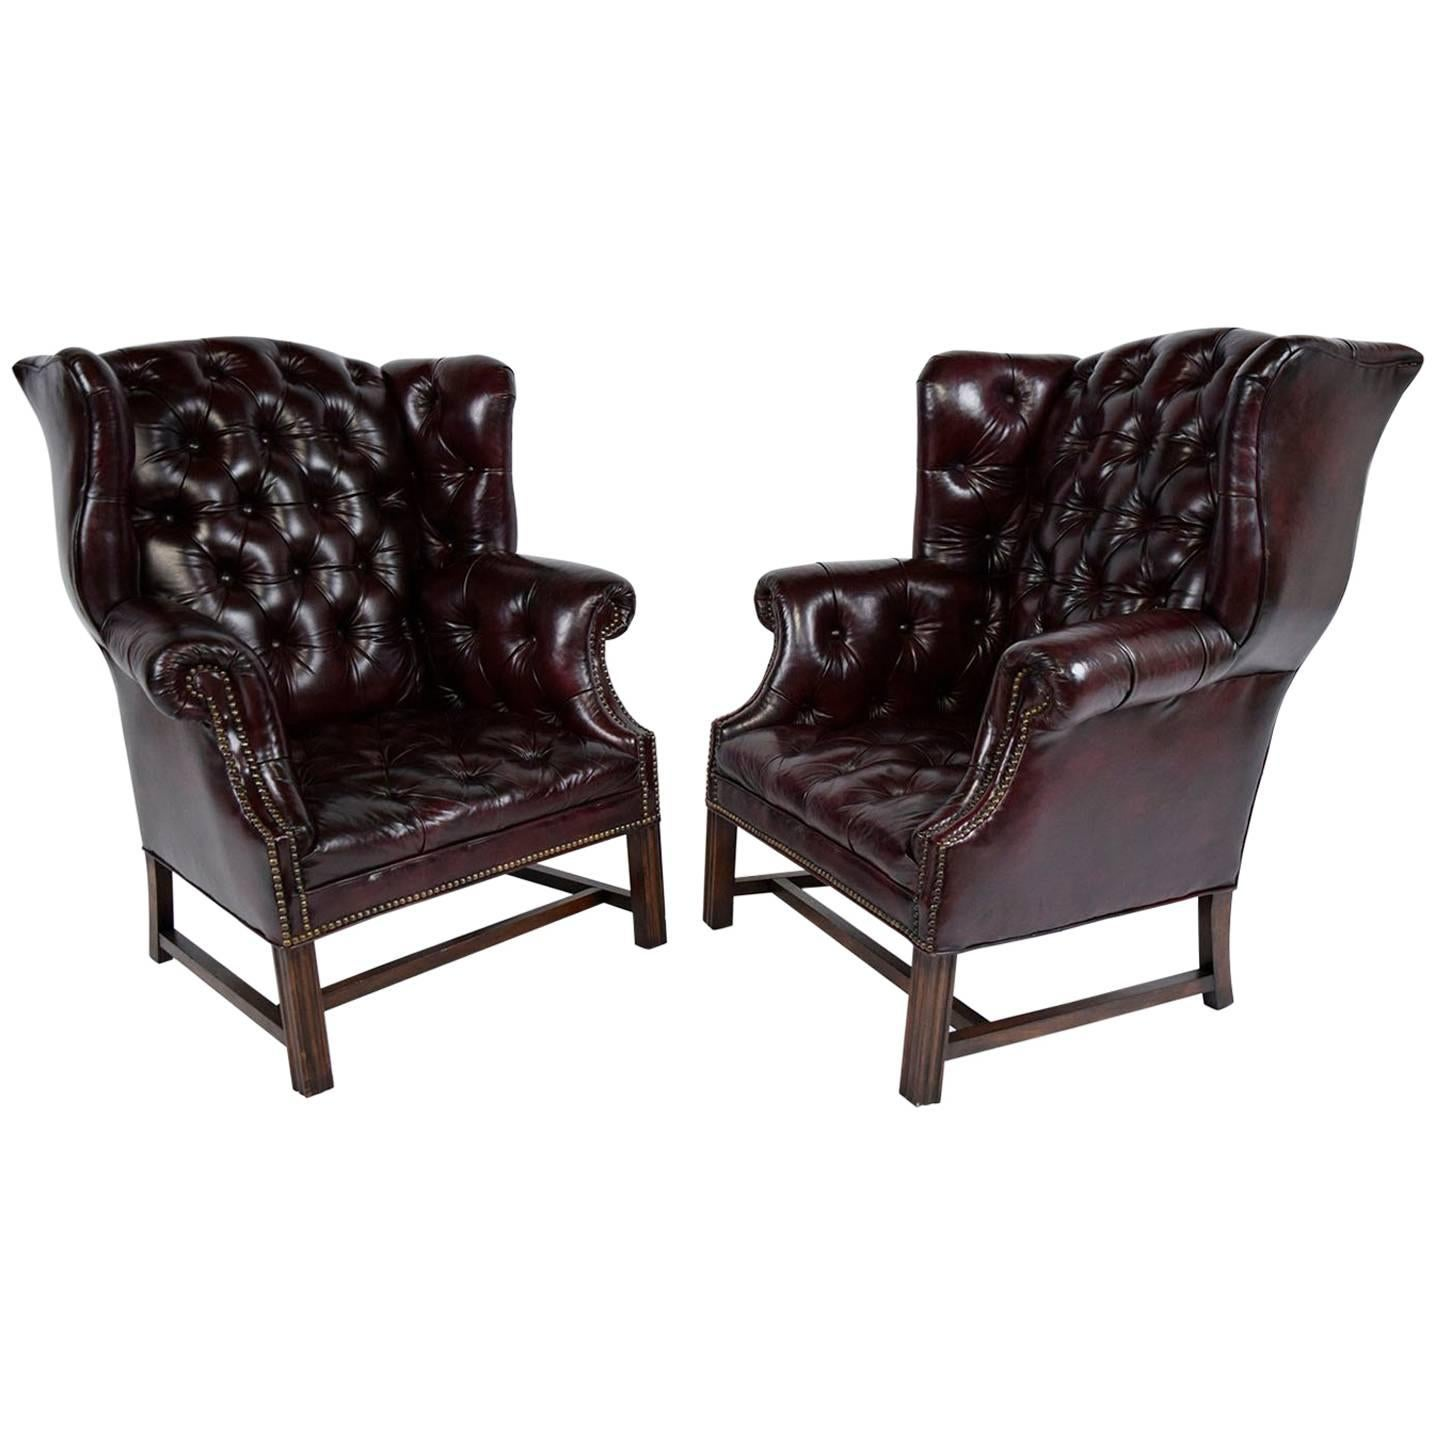 Beau Pair Of Chesterfield Tufted Leather Wingback Chairs